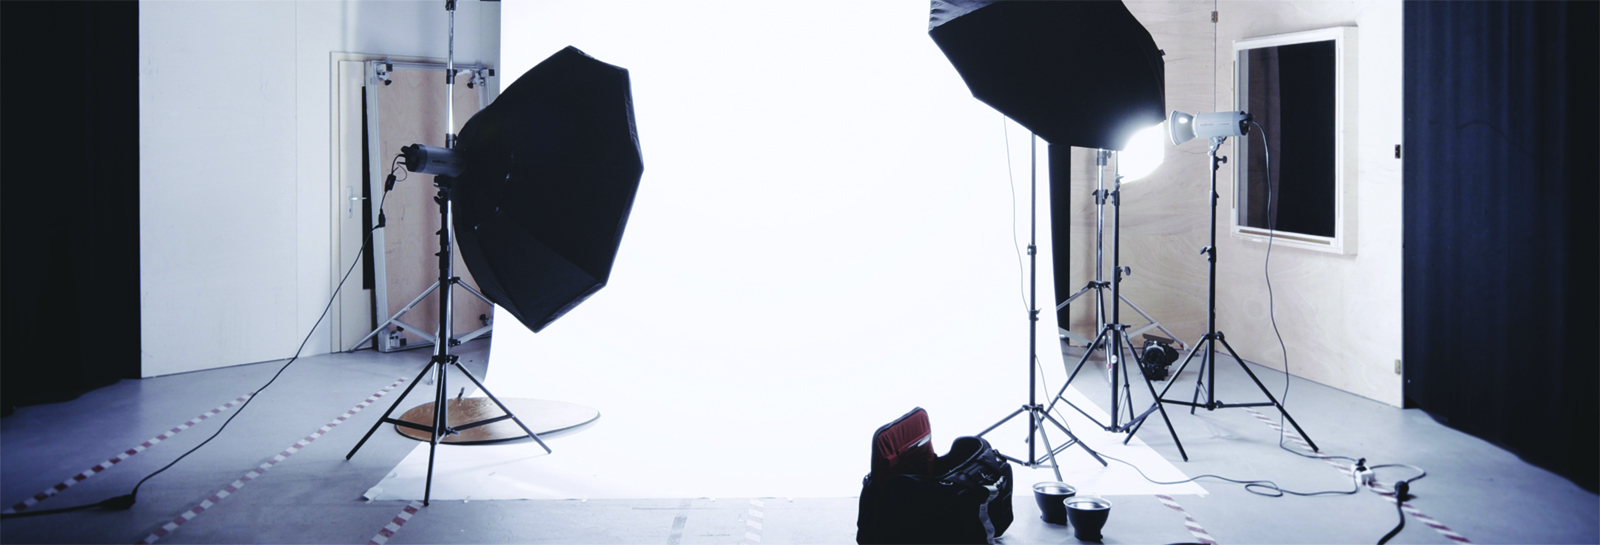 a photoshoot backdrop with lights set up